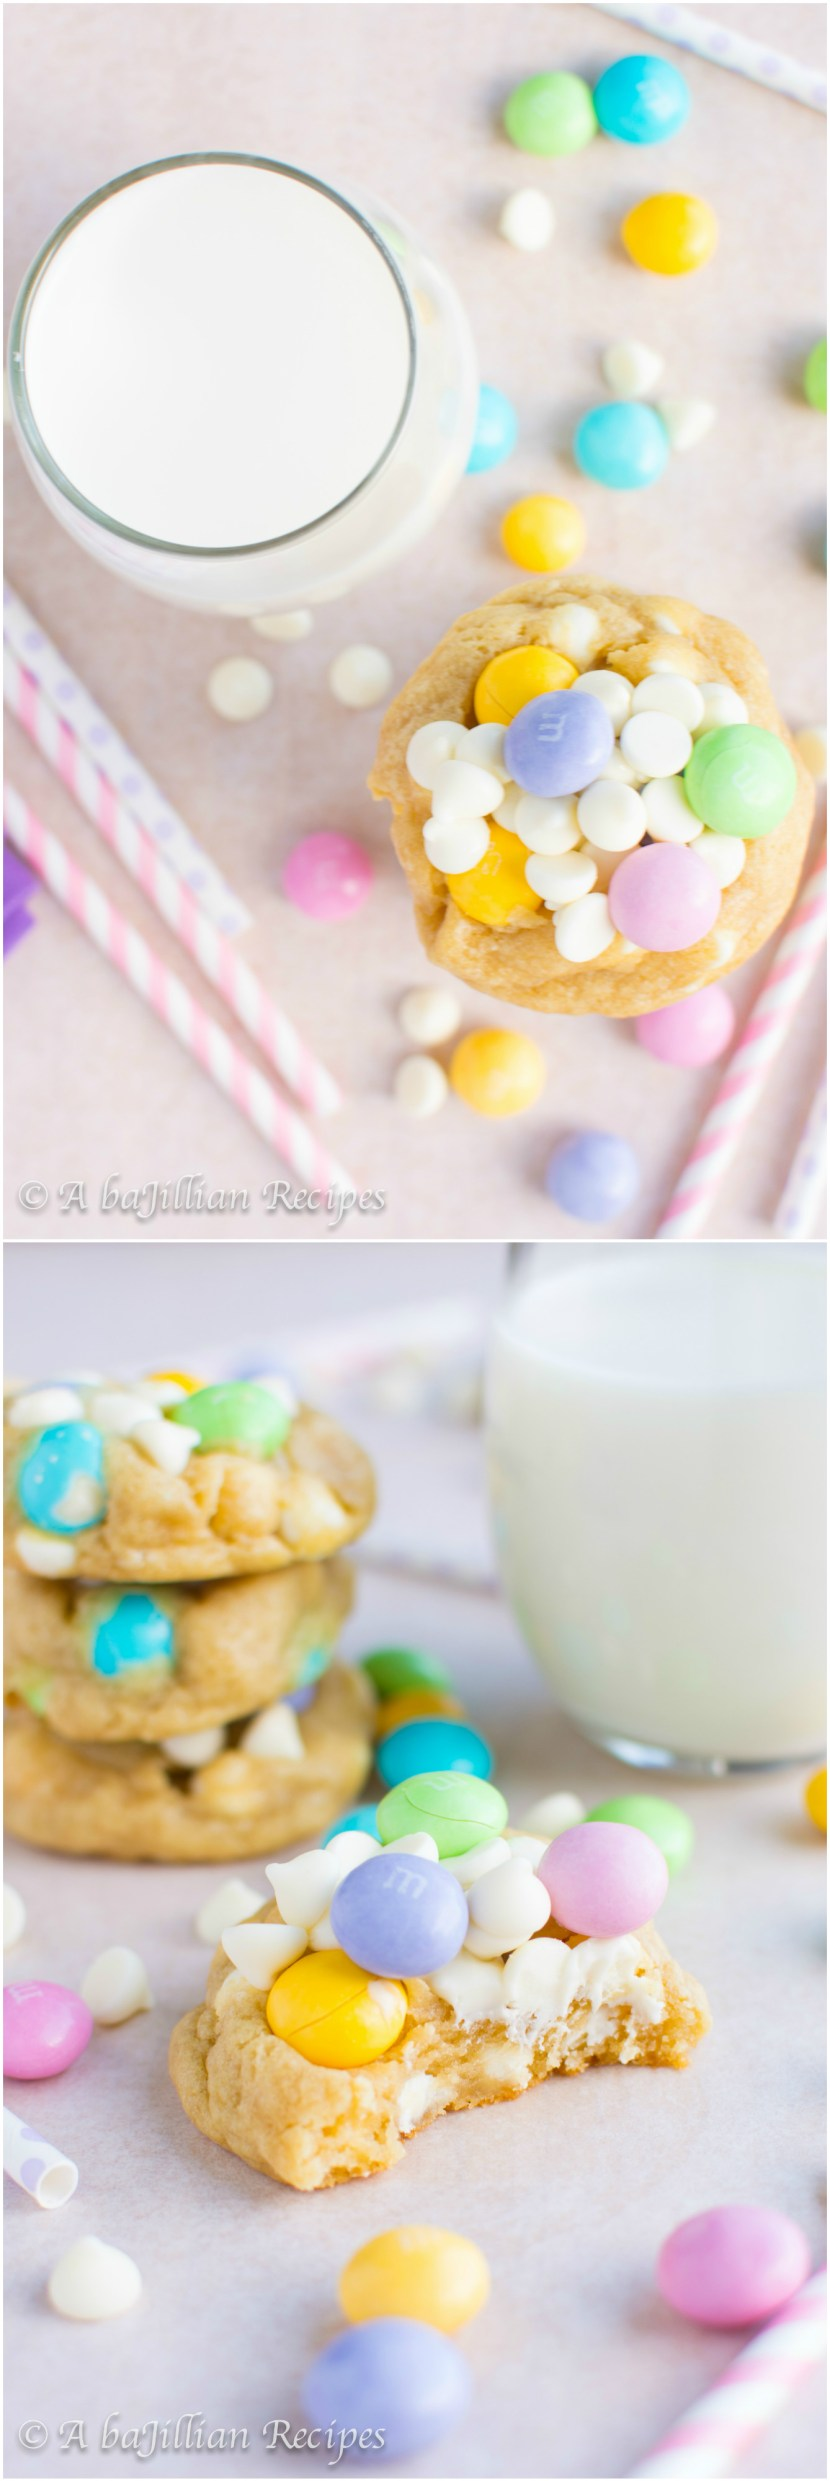 White Chocolate M&M Cookies | A baJillian Recipes3